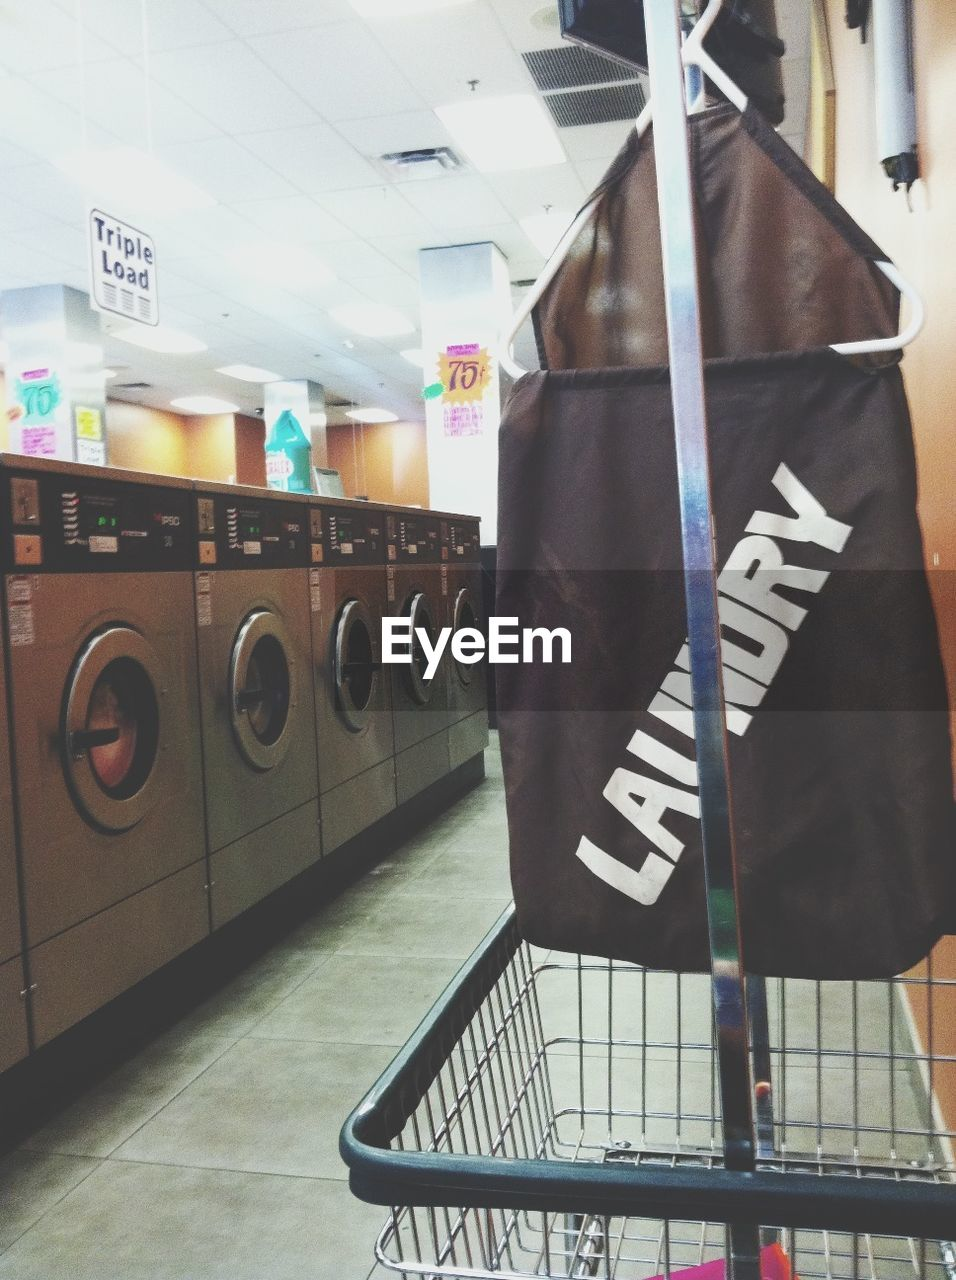 Text of bag by dryers in laundromat